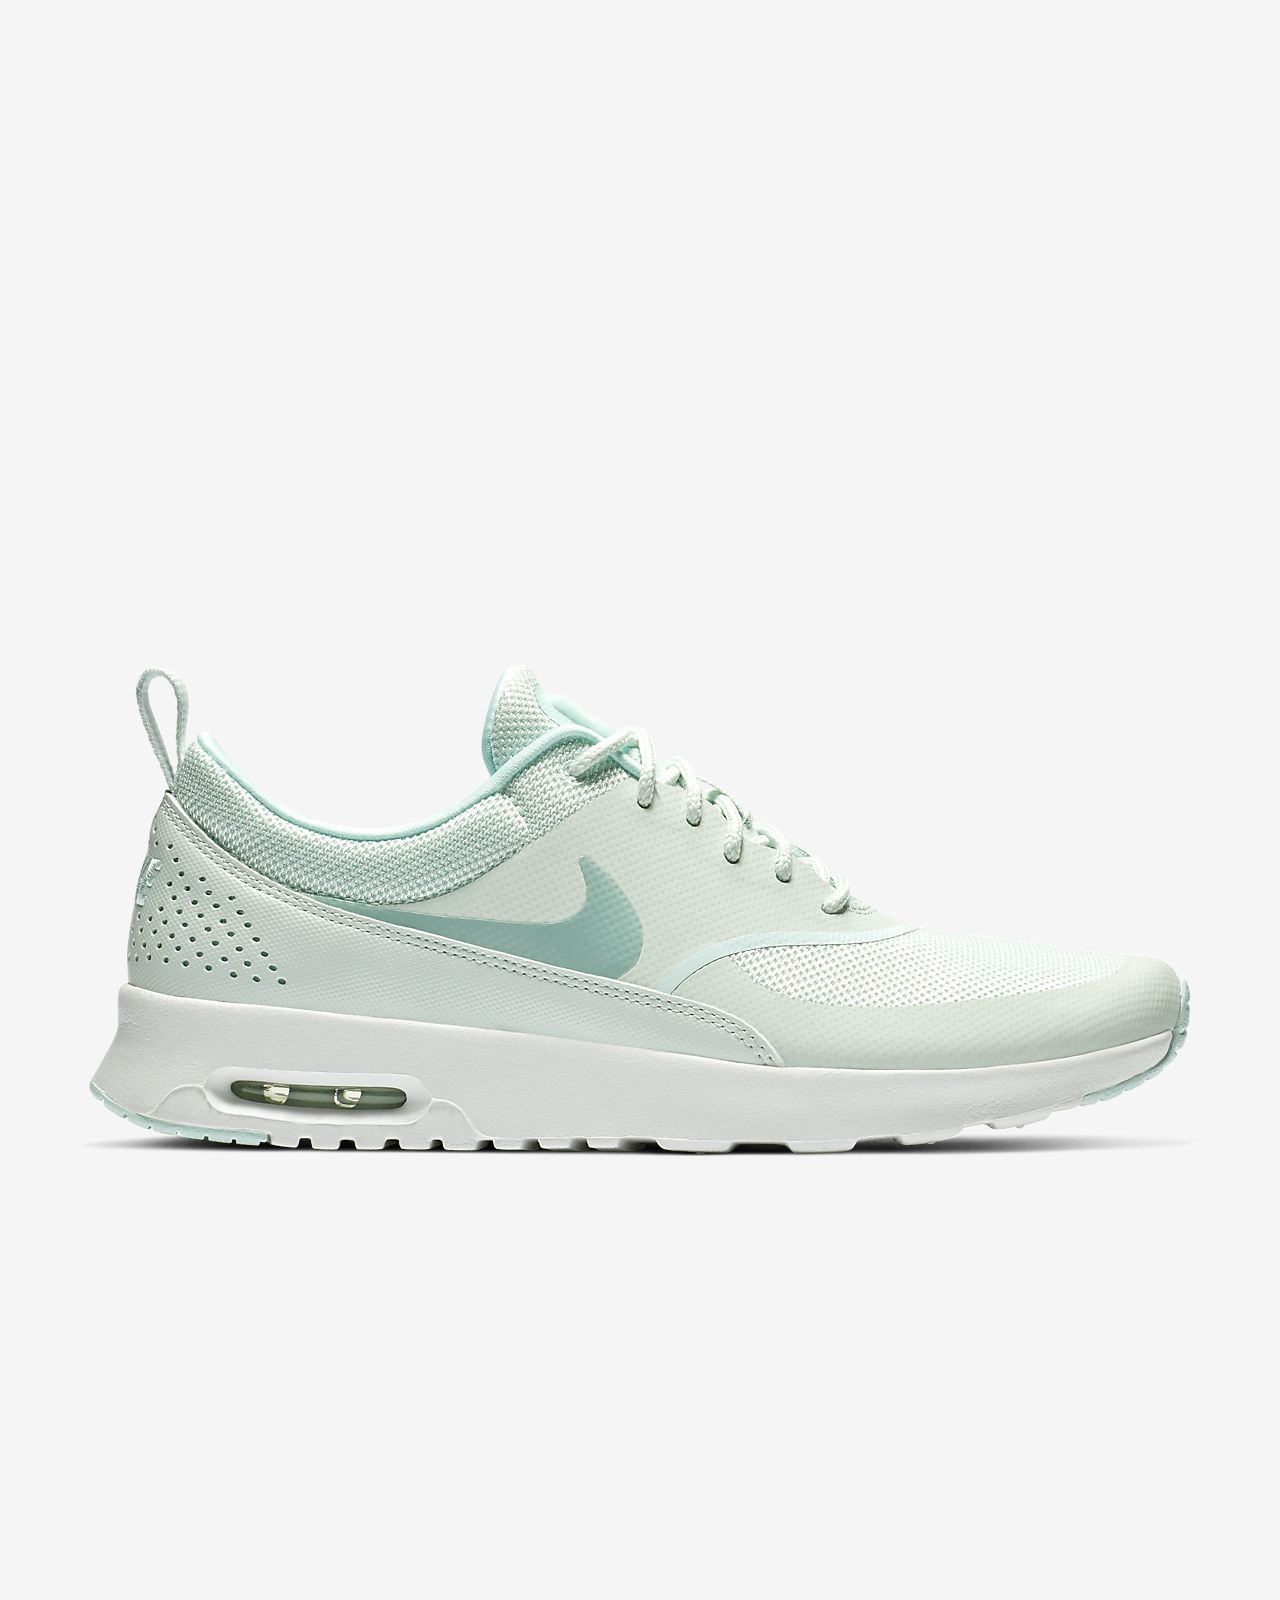 a0469349a798 Nike Air Max Thea Women s Shoe. Nike.com GB